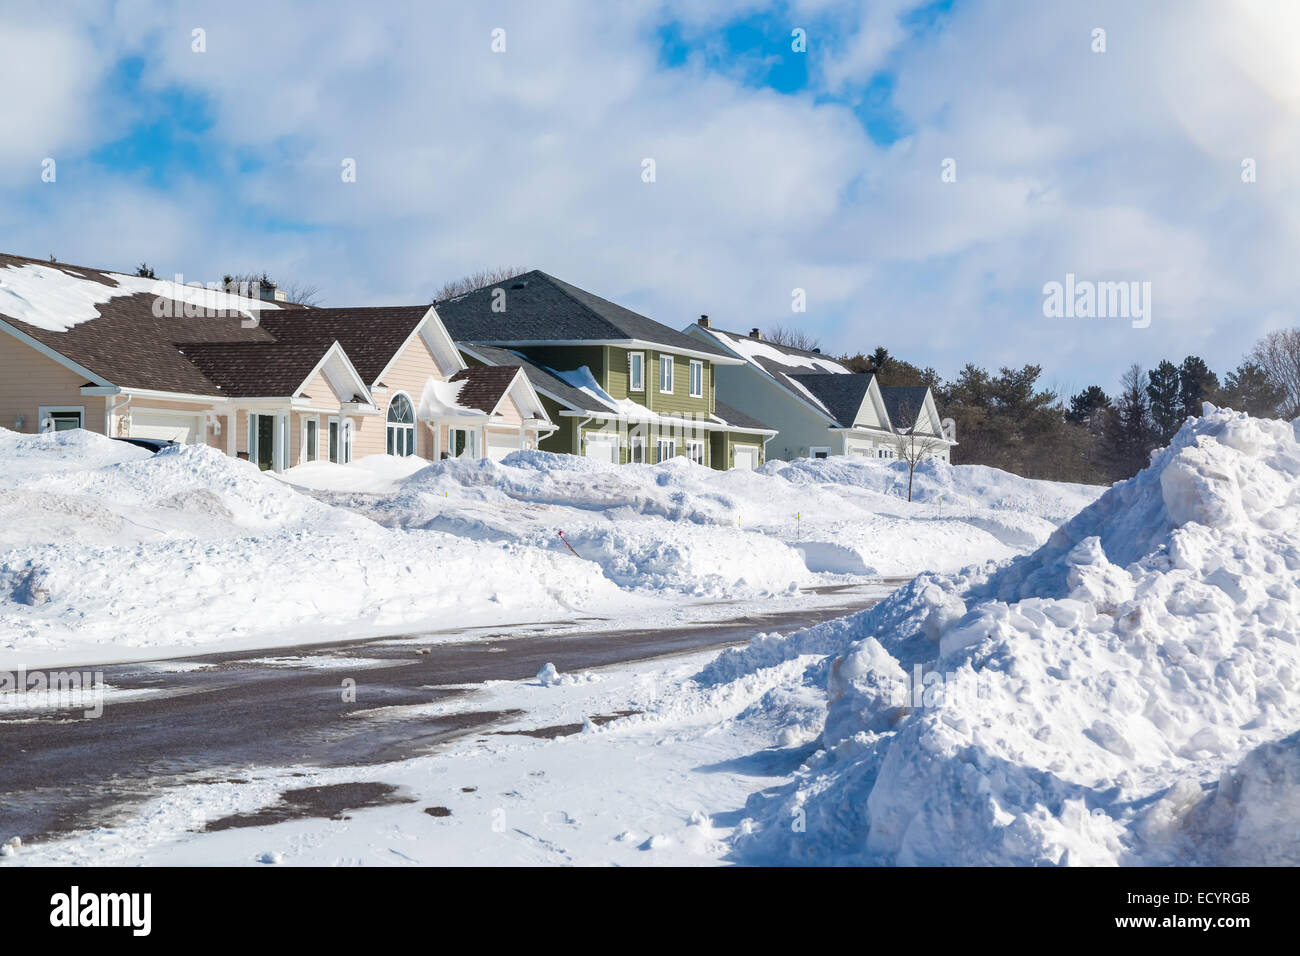 Piles of snow from plowed roads in the suburbs. - Stock Image